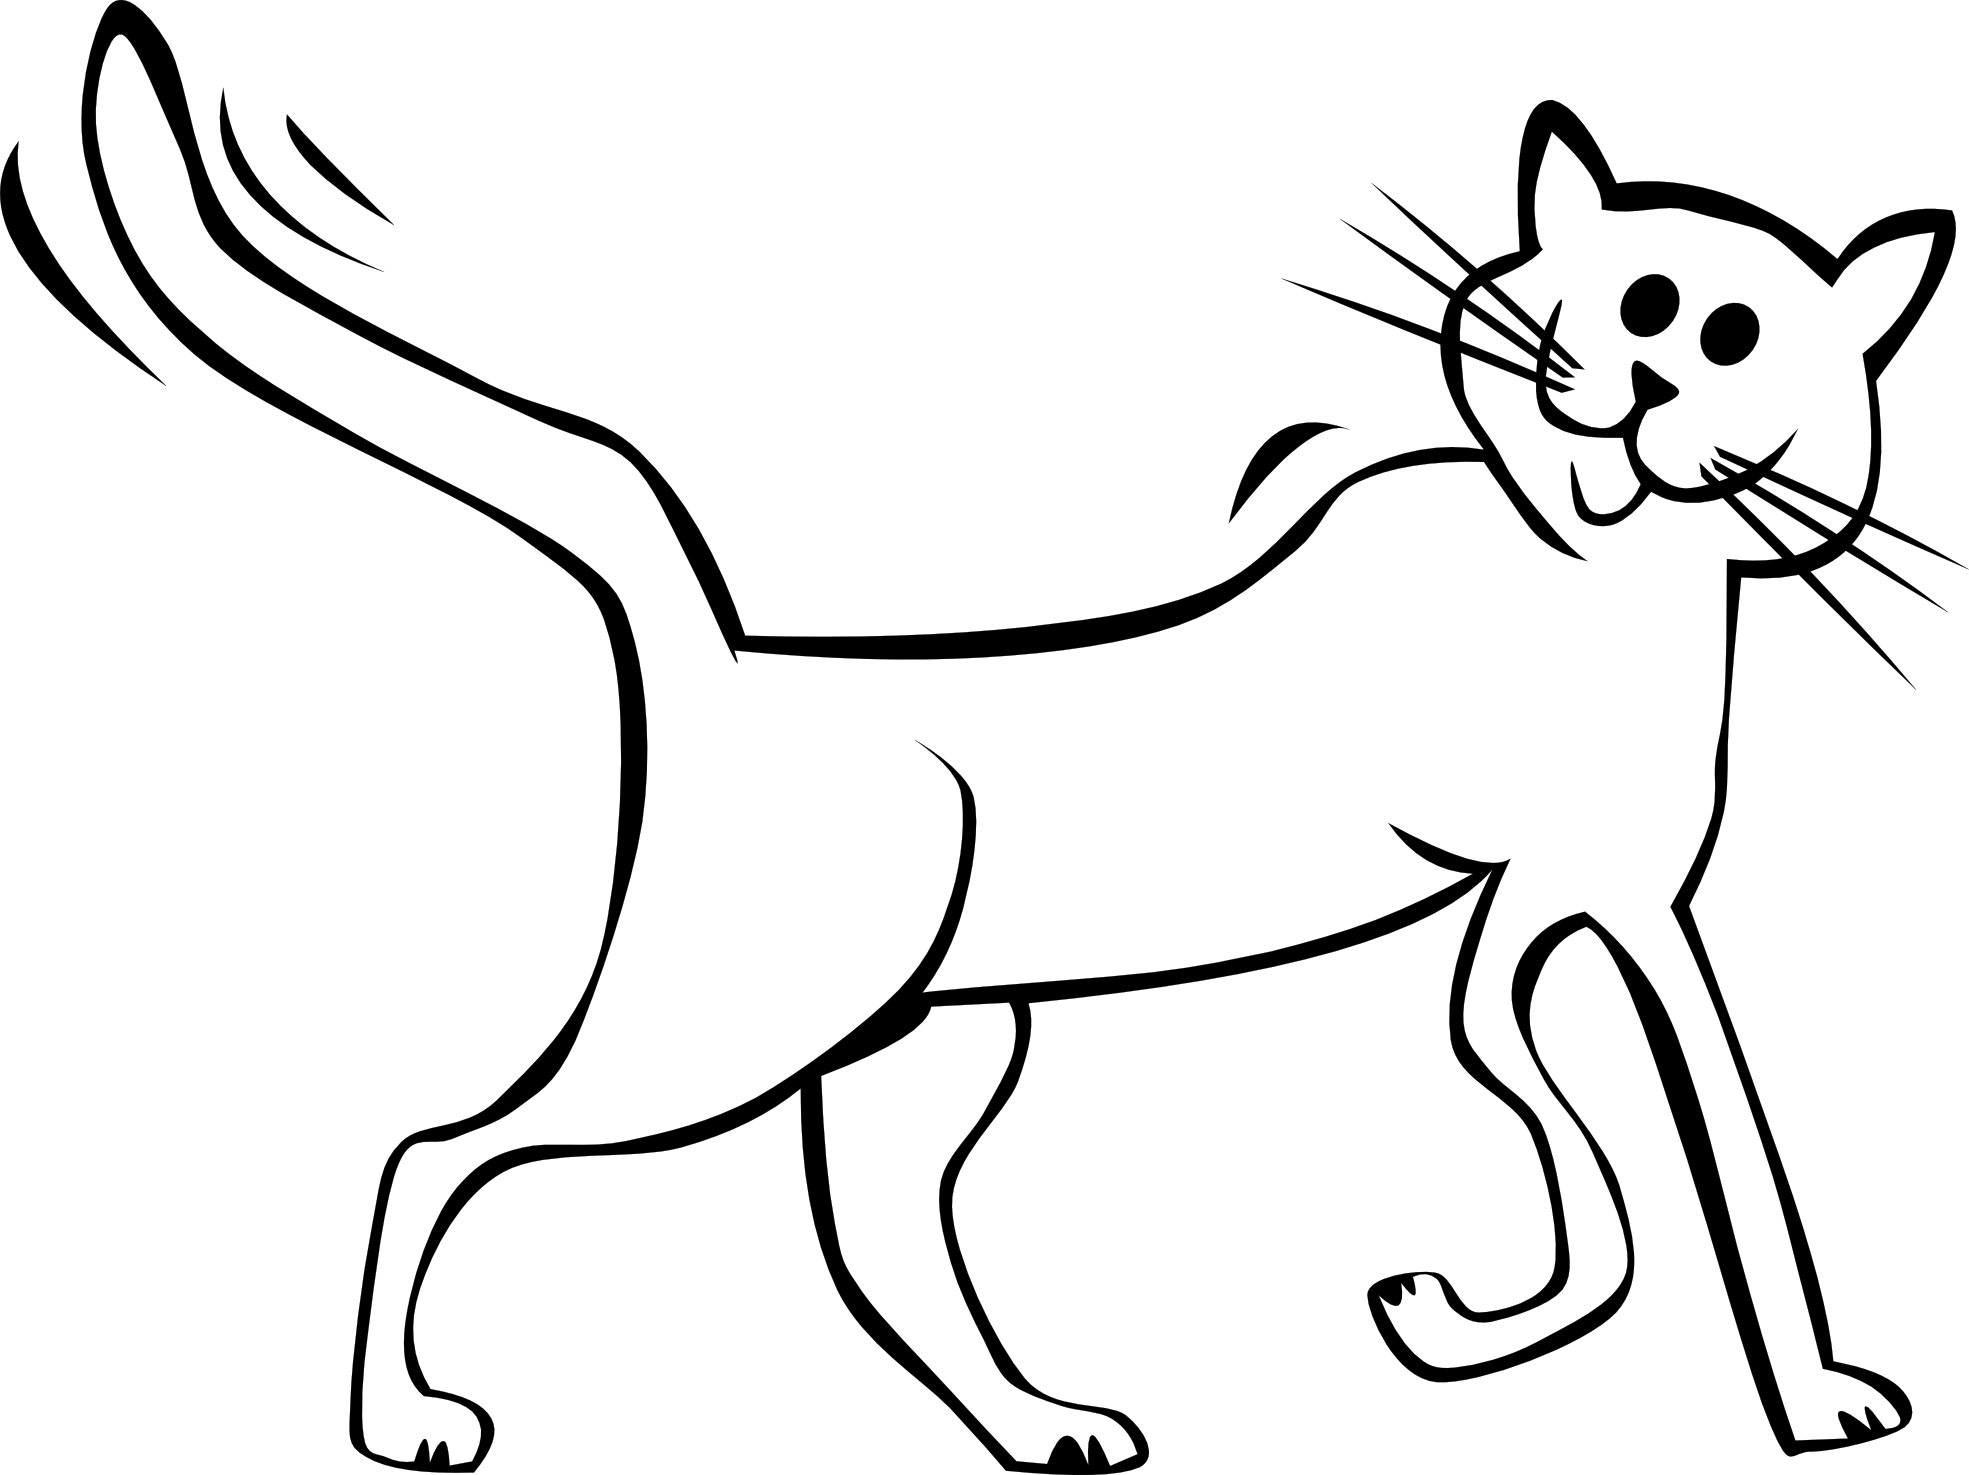 Fighting clipart black and white. Free cat cartoon download